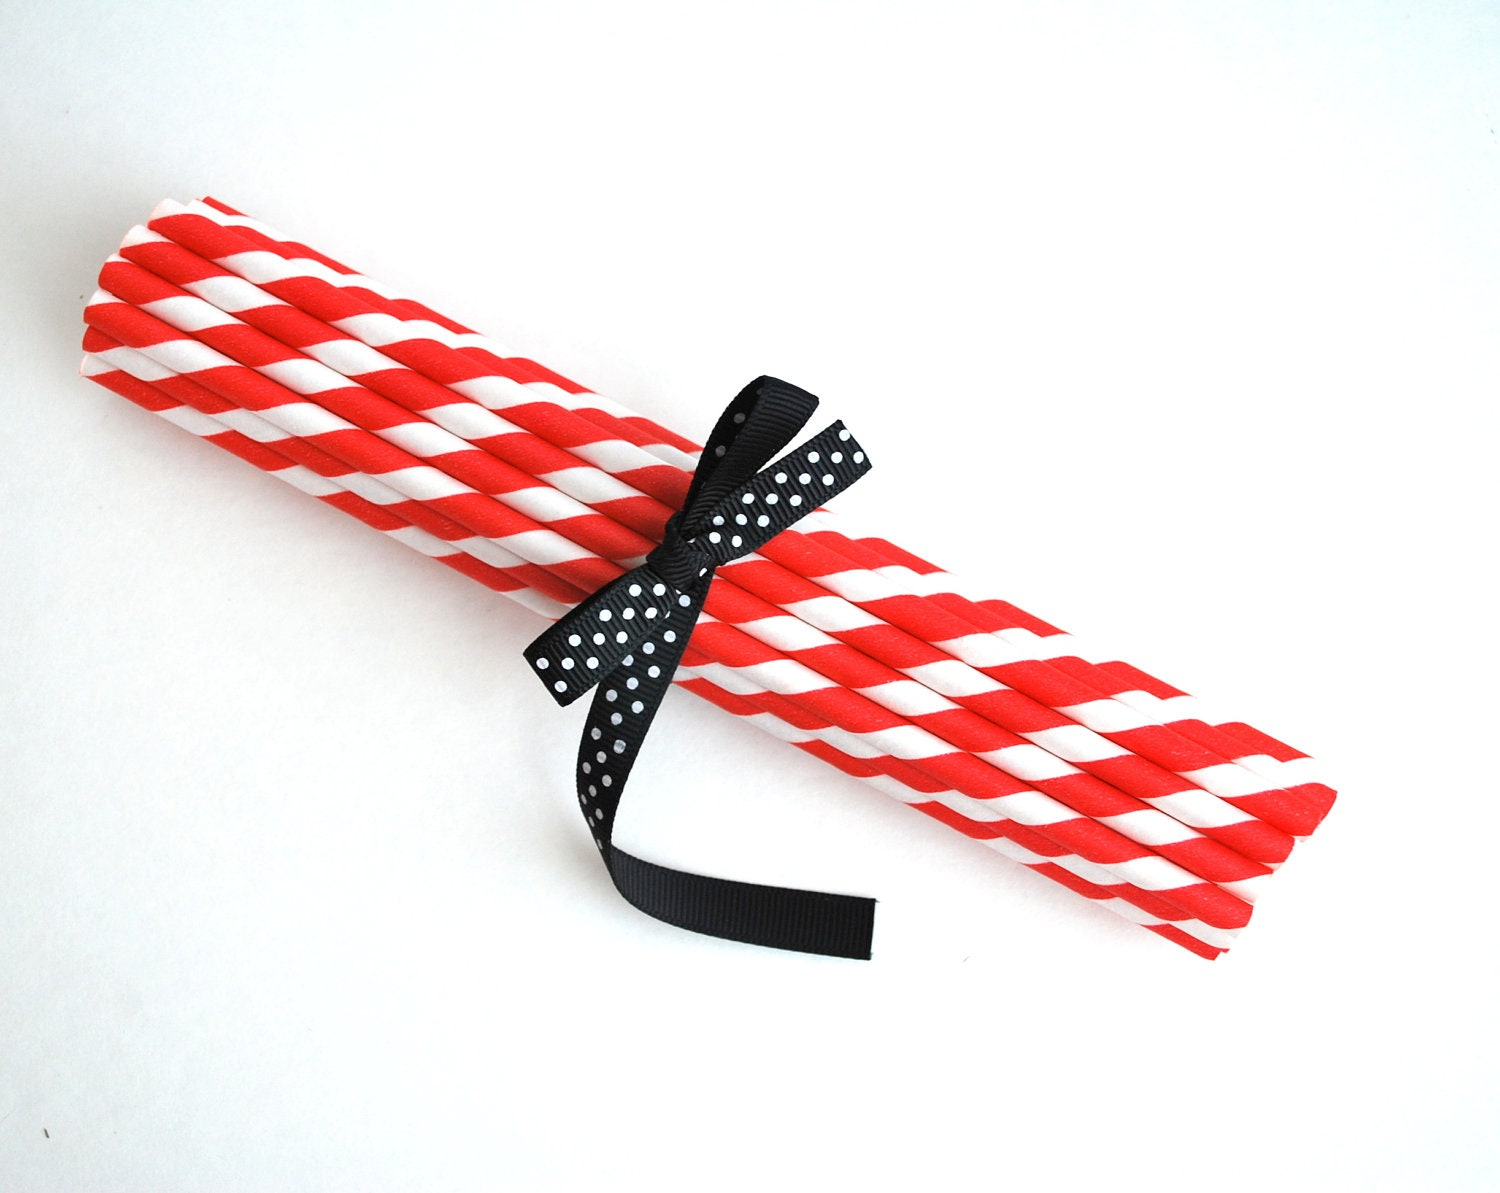 24 CHRISTMAS RED STRIPED Paper Straws a427 - Mariapalito